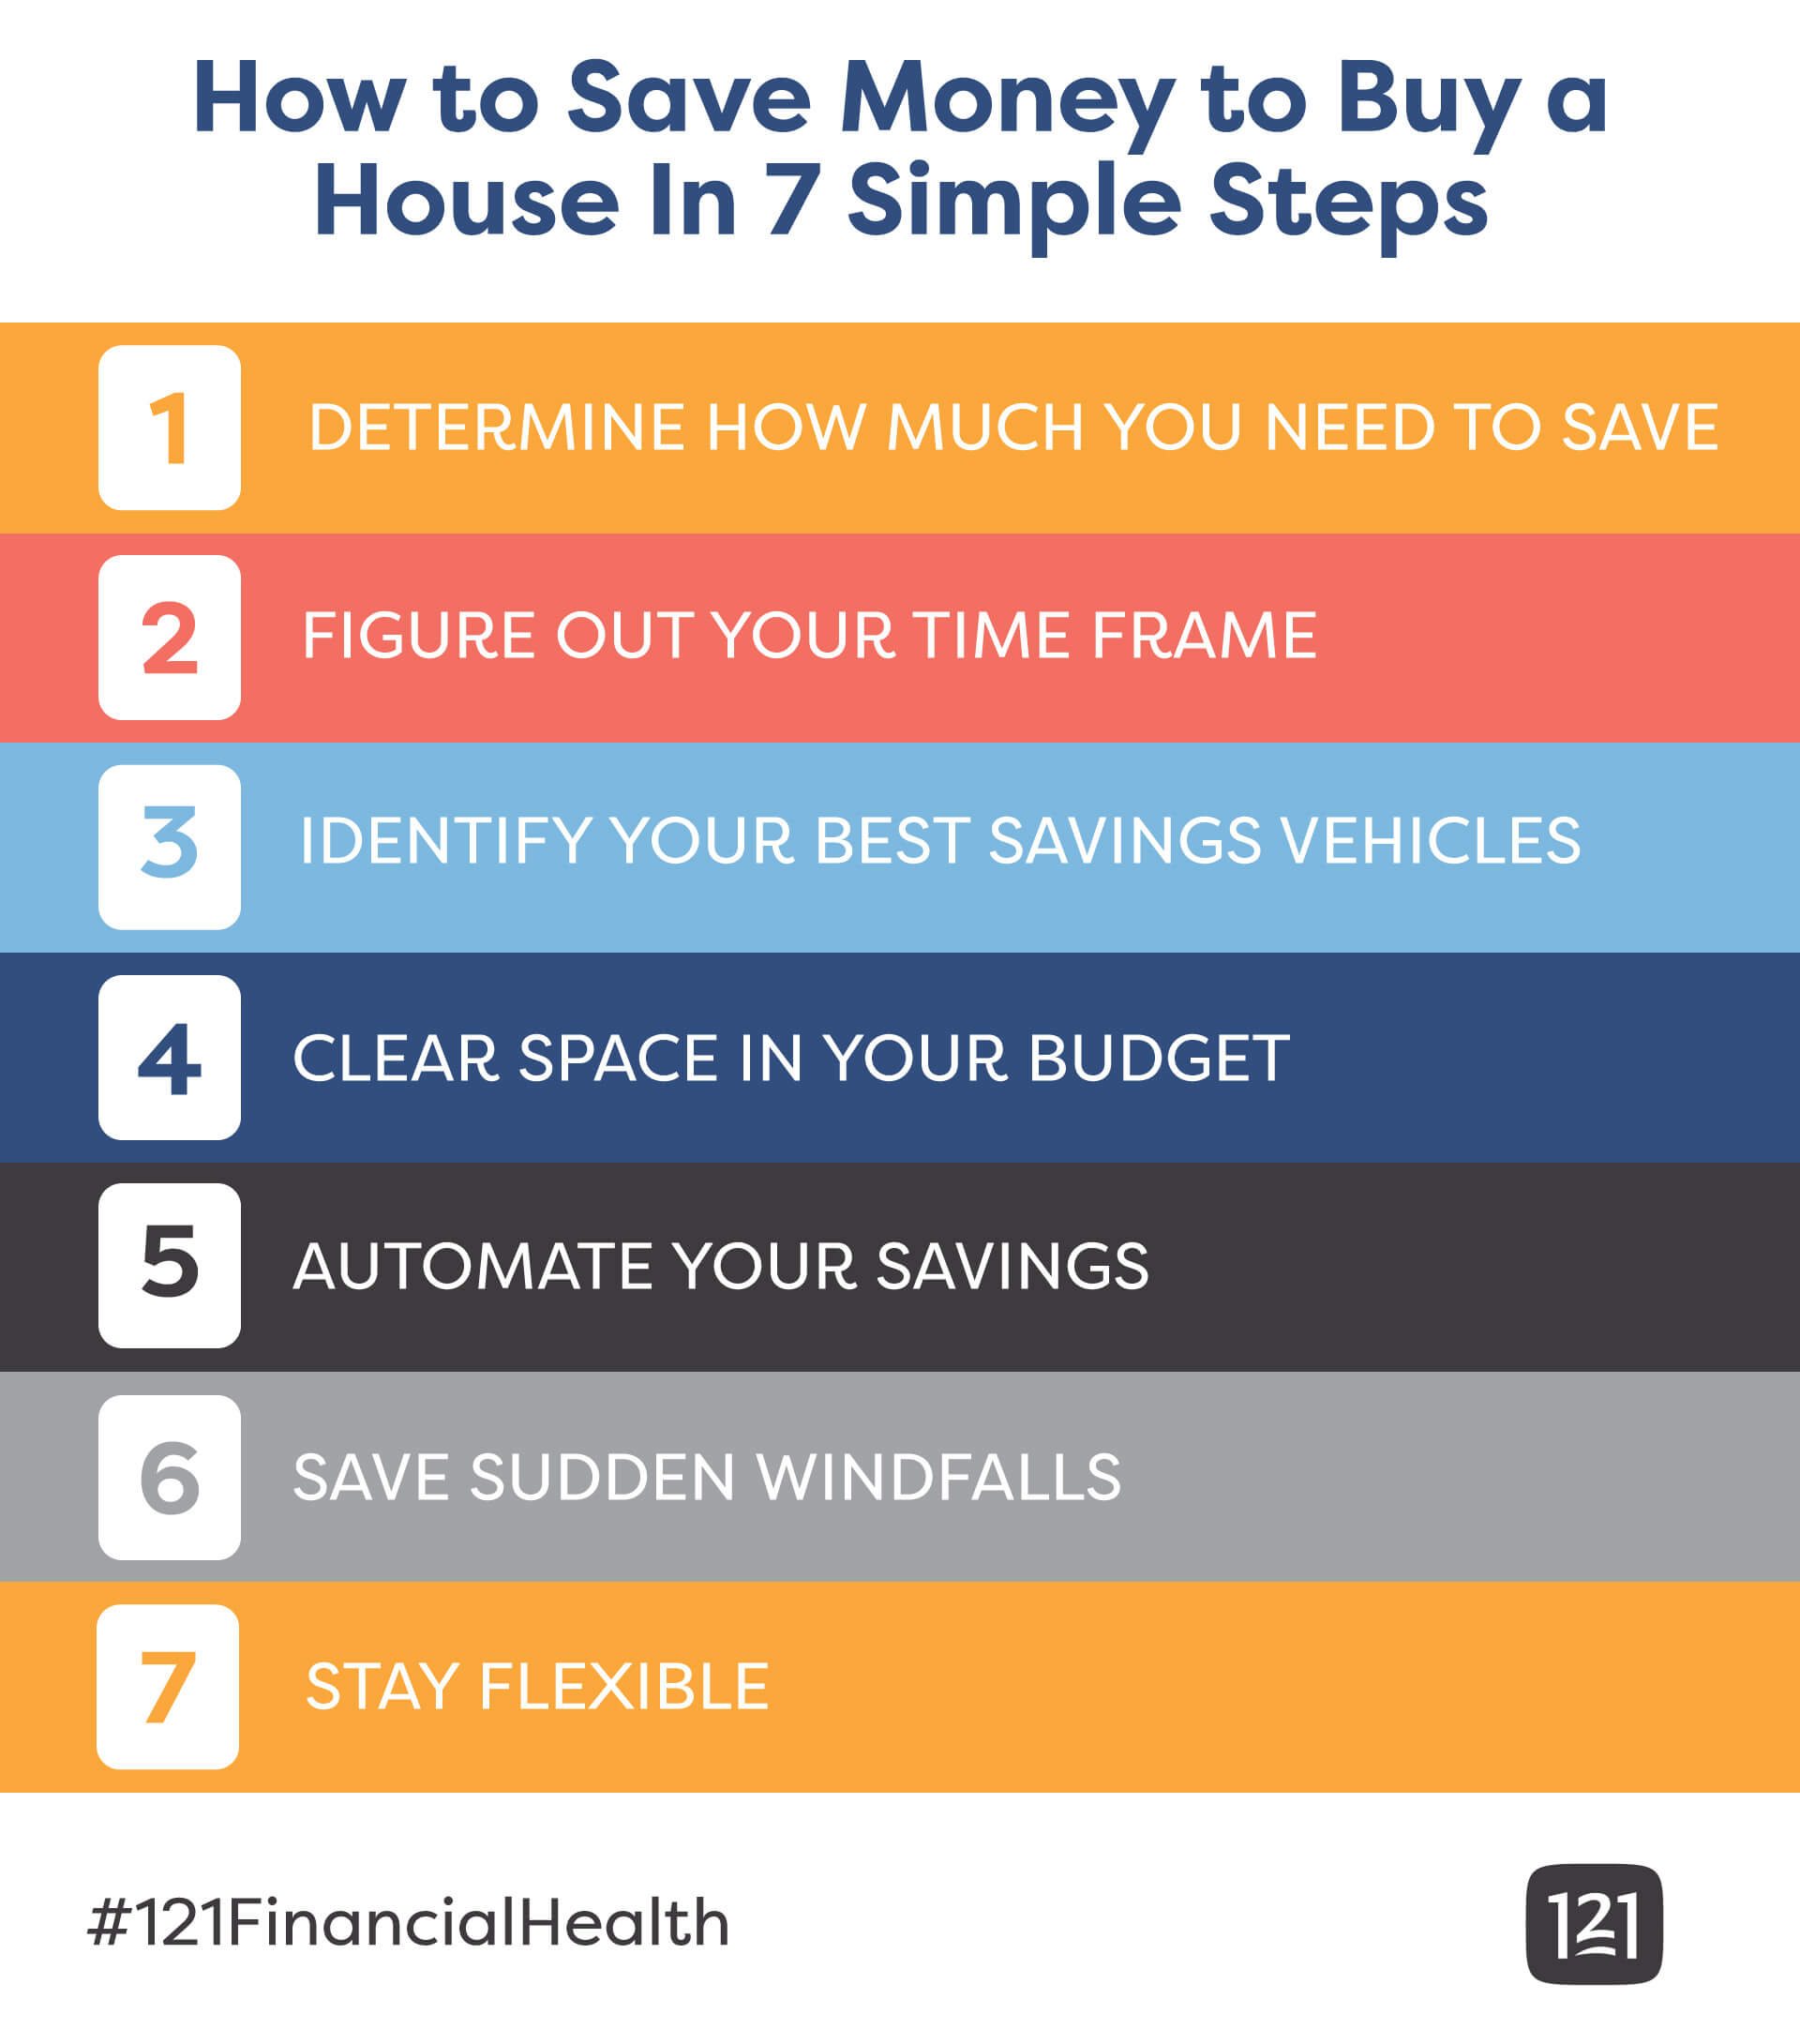 7 steps to saving money to buy a house